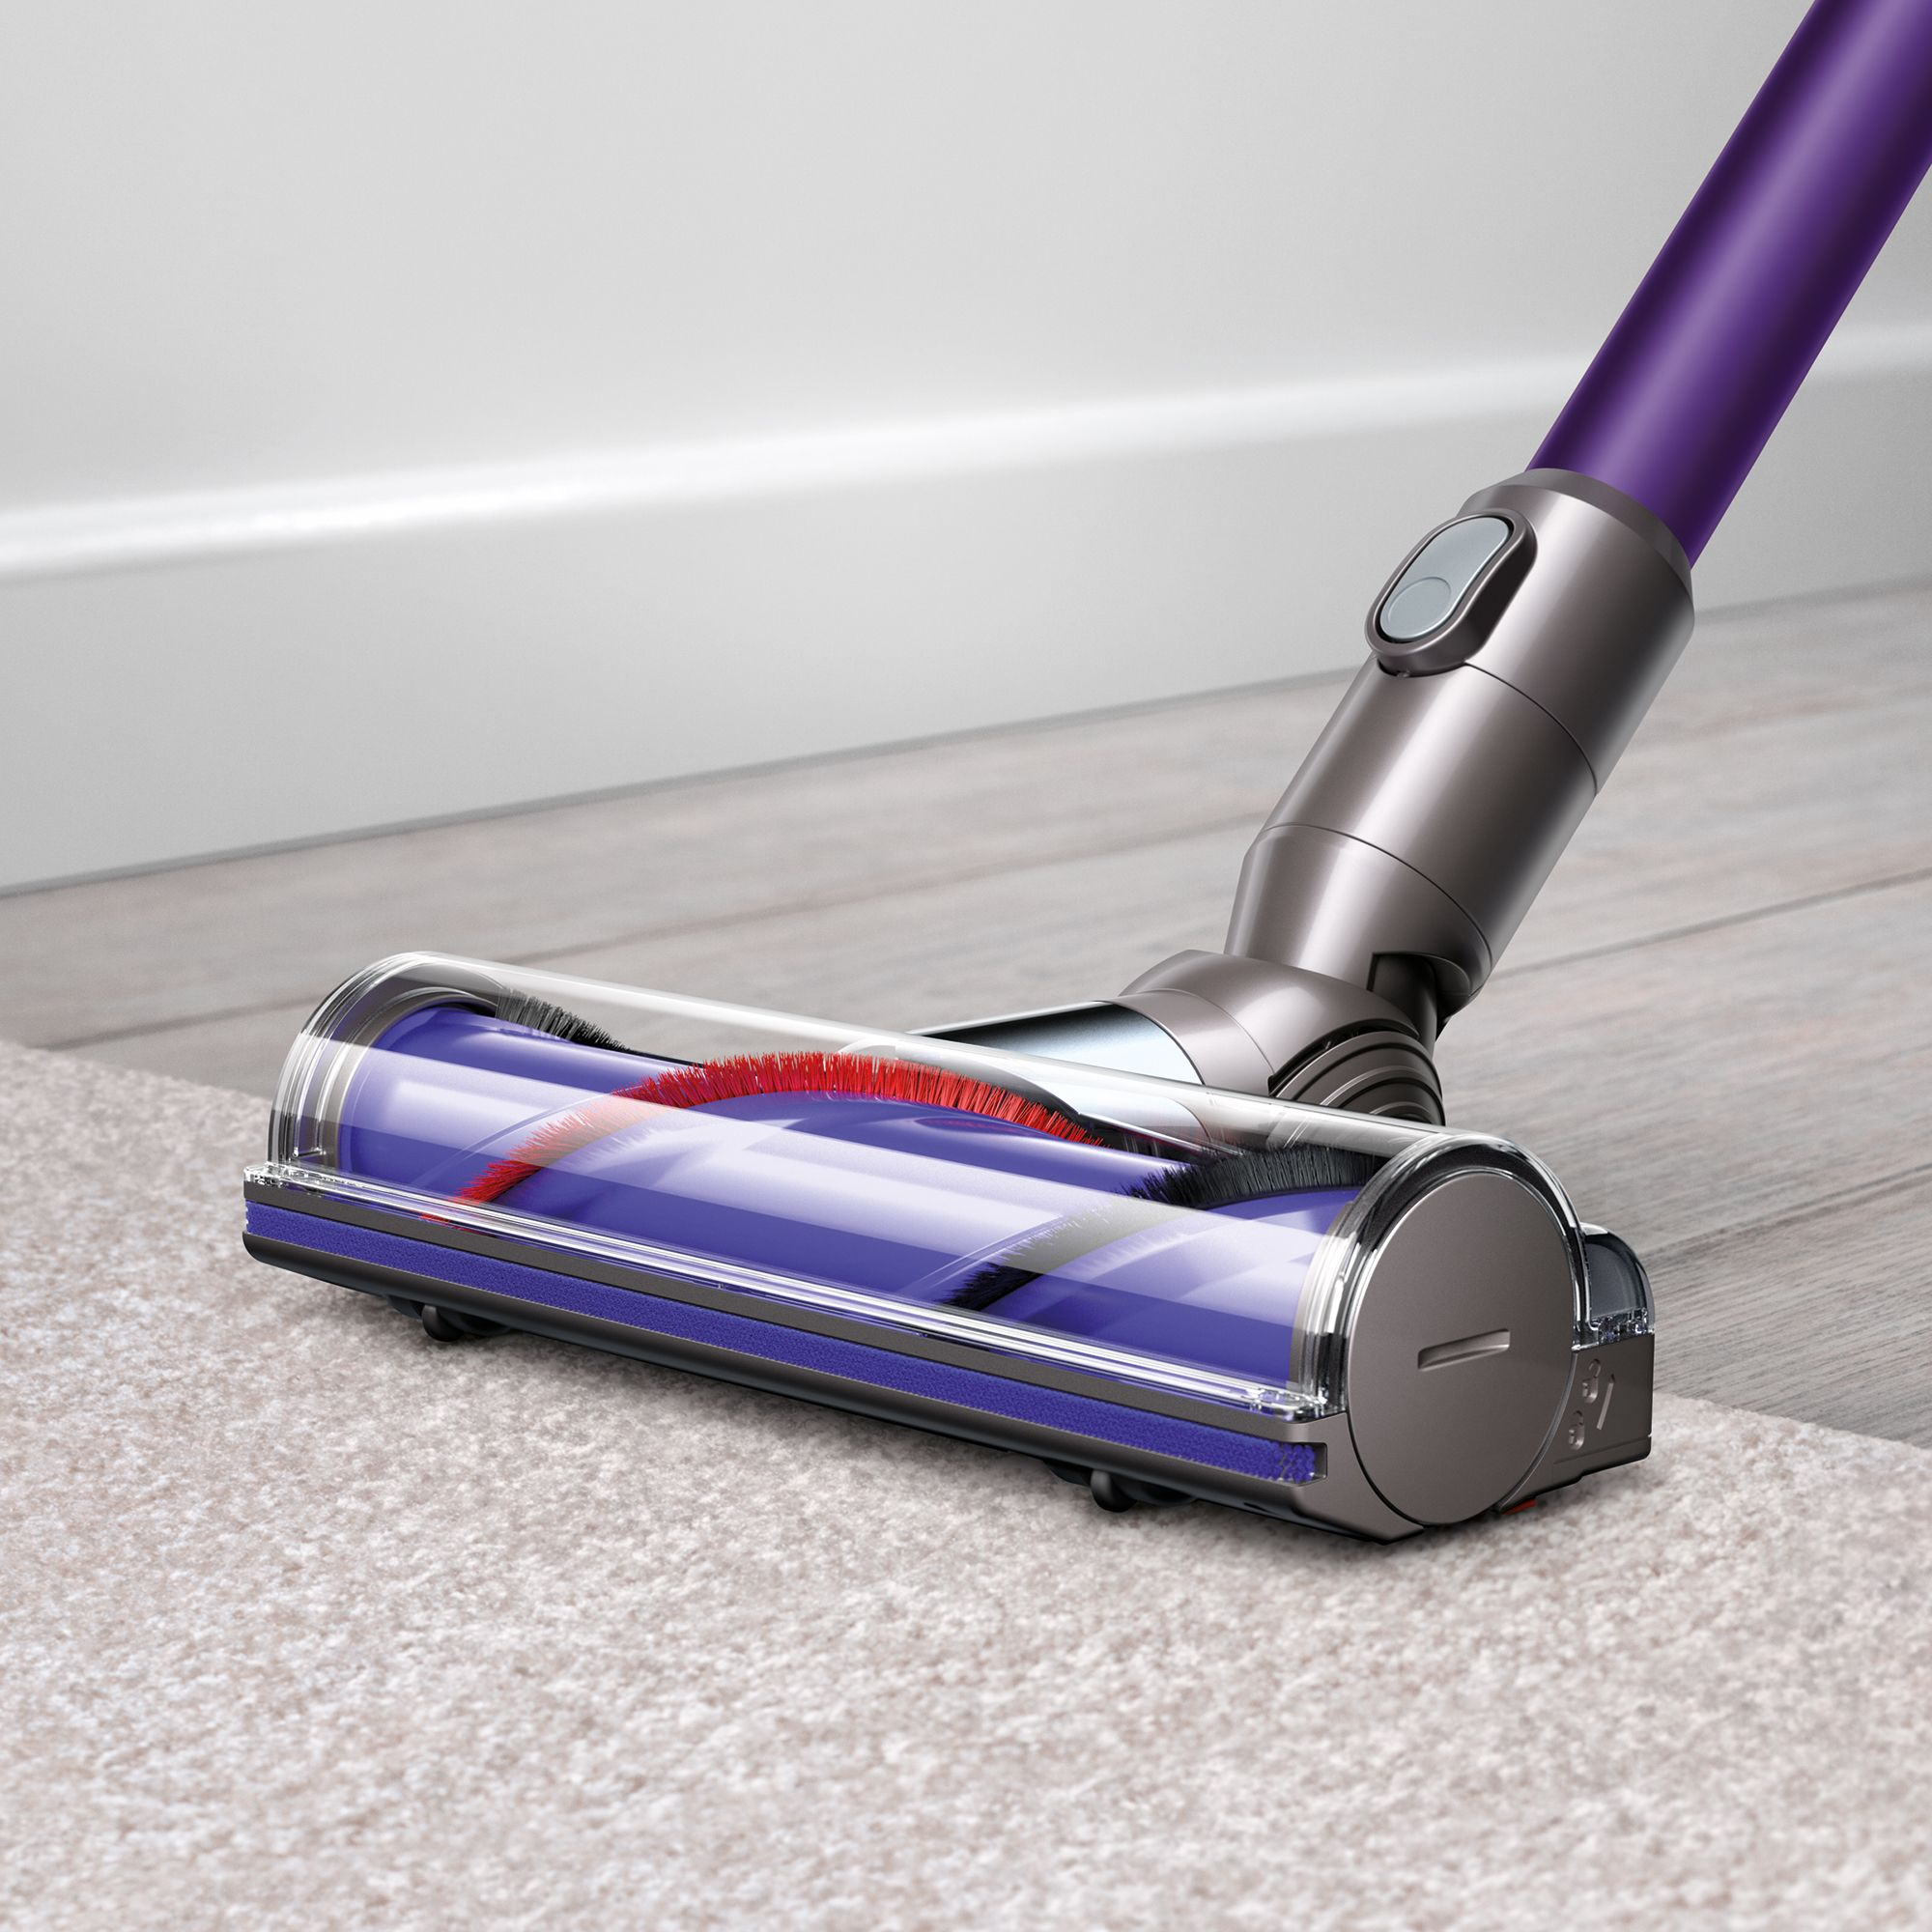 Picture 8 of 14 Carpet cleaning hacks, Best cordless